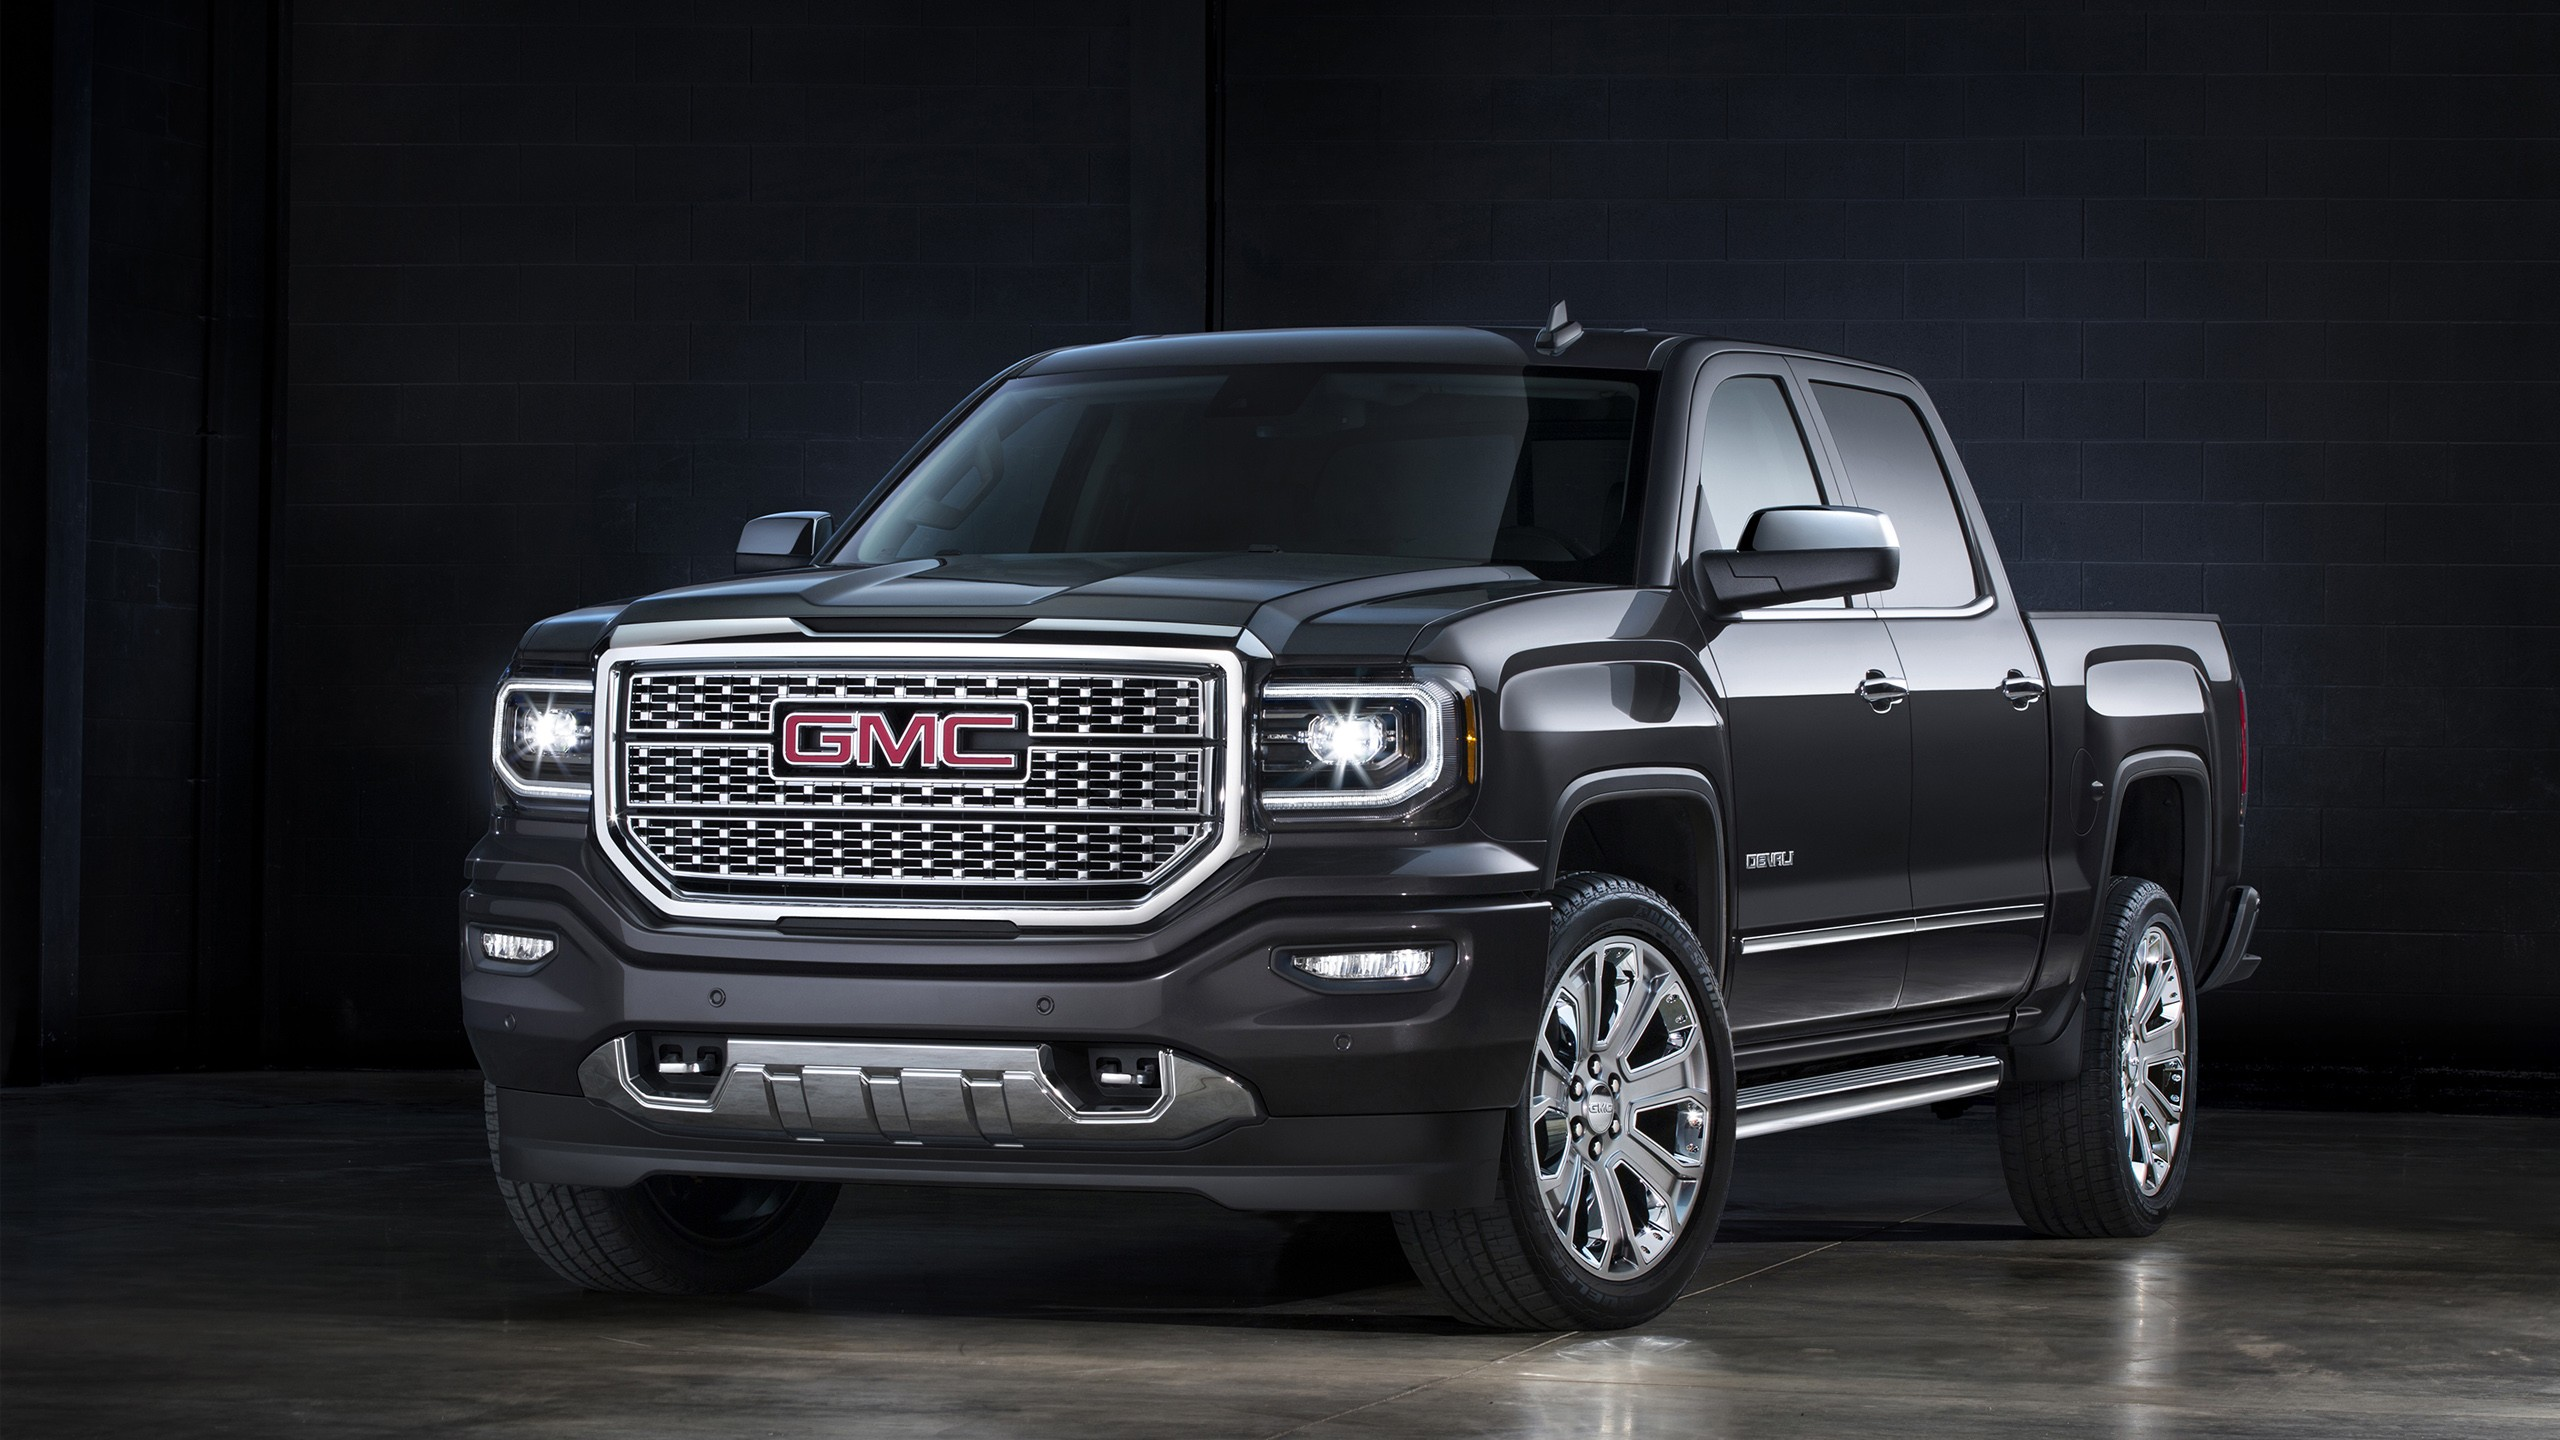 2016 GMC Sierra Denali Wallpaper | HD Car Wallpapers | ID #5868